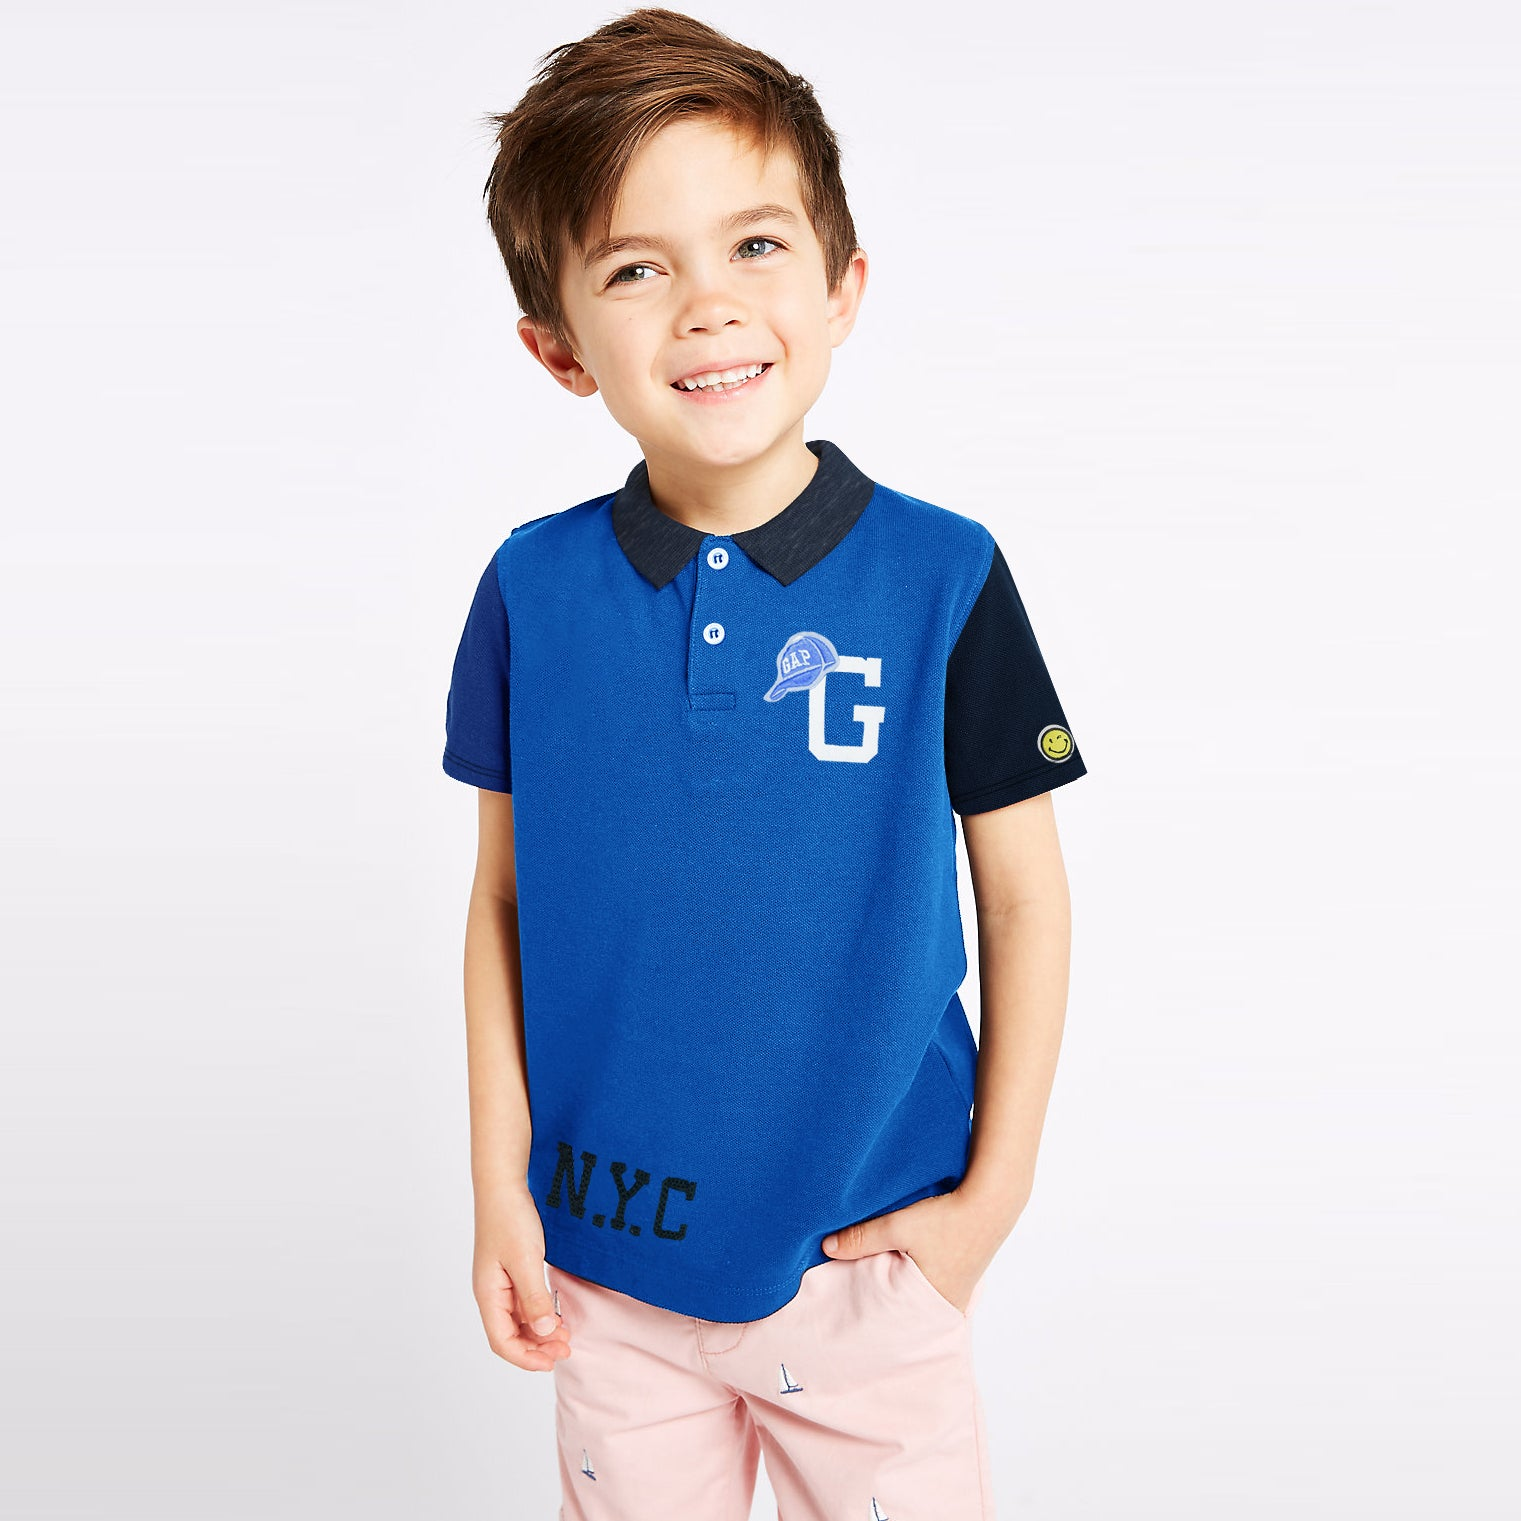 brandsego - GAP Half Sleeve P.Q Polo Shirt For Kids-BE8627